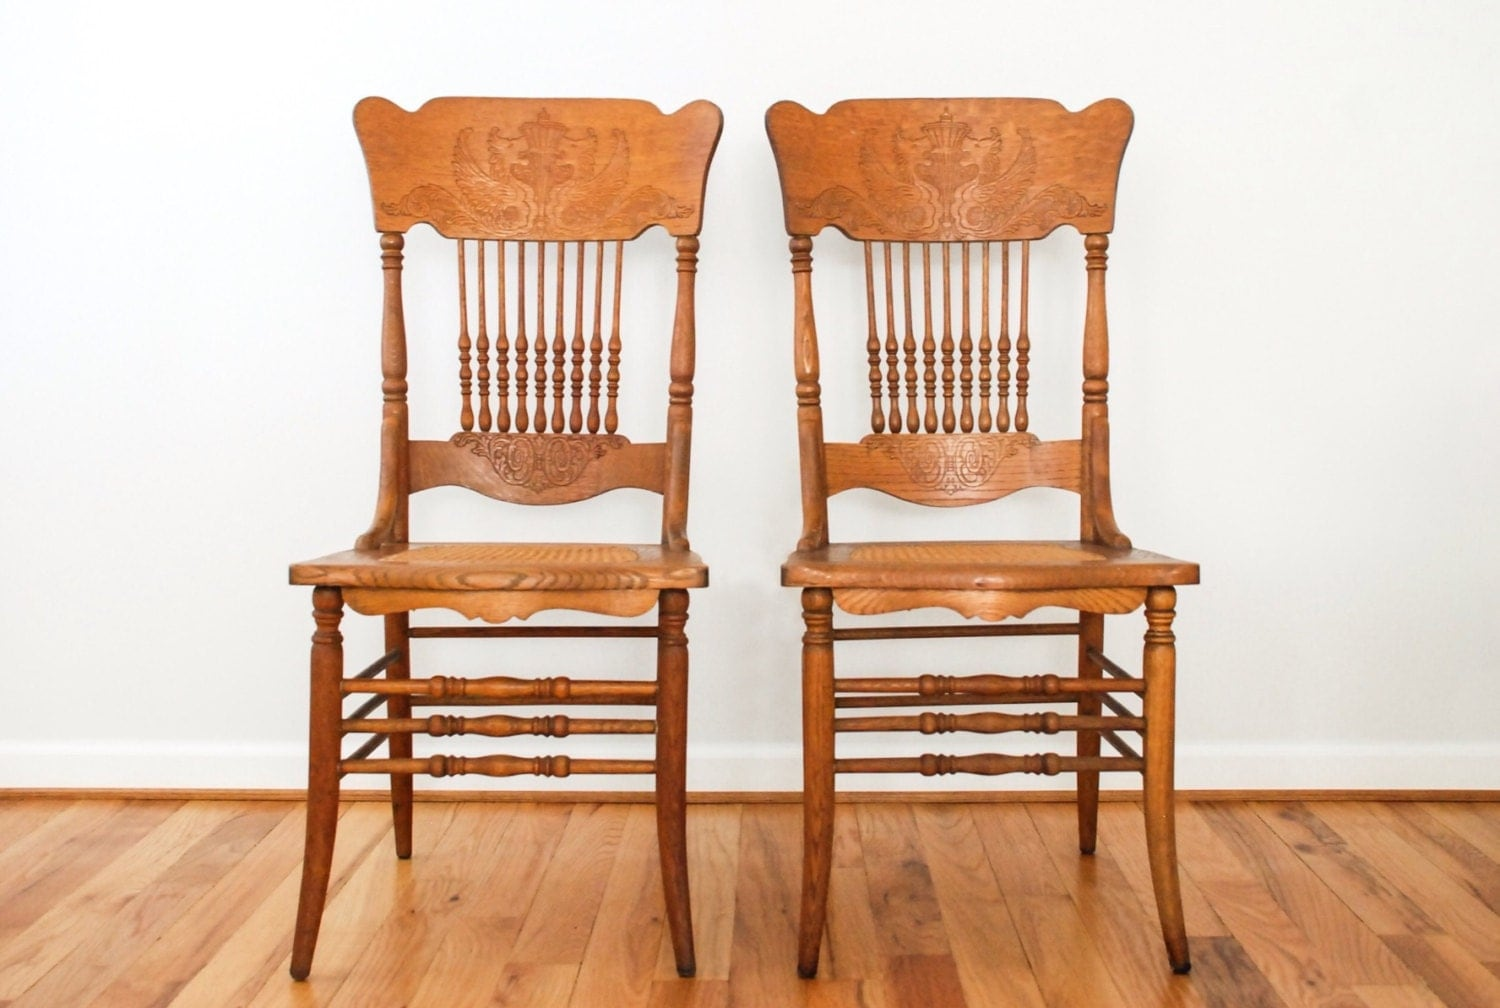 Antique victorian dining chairs -  Zoom